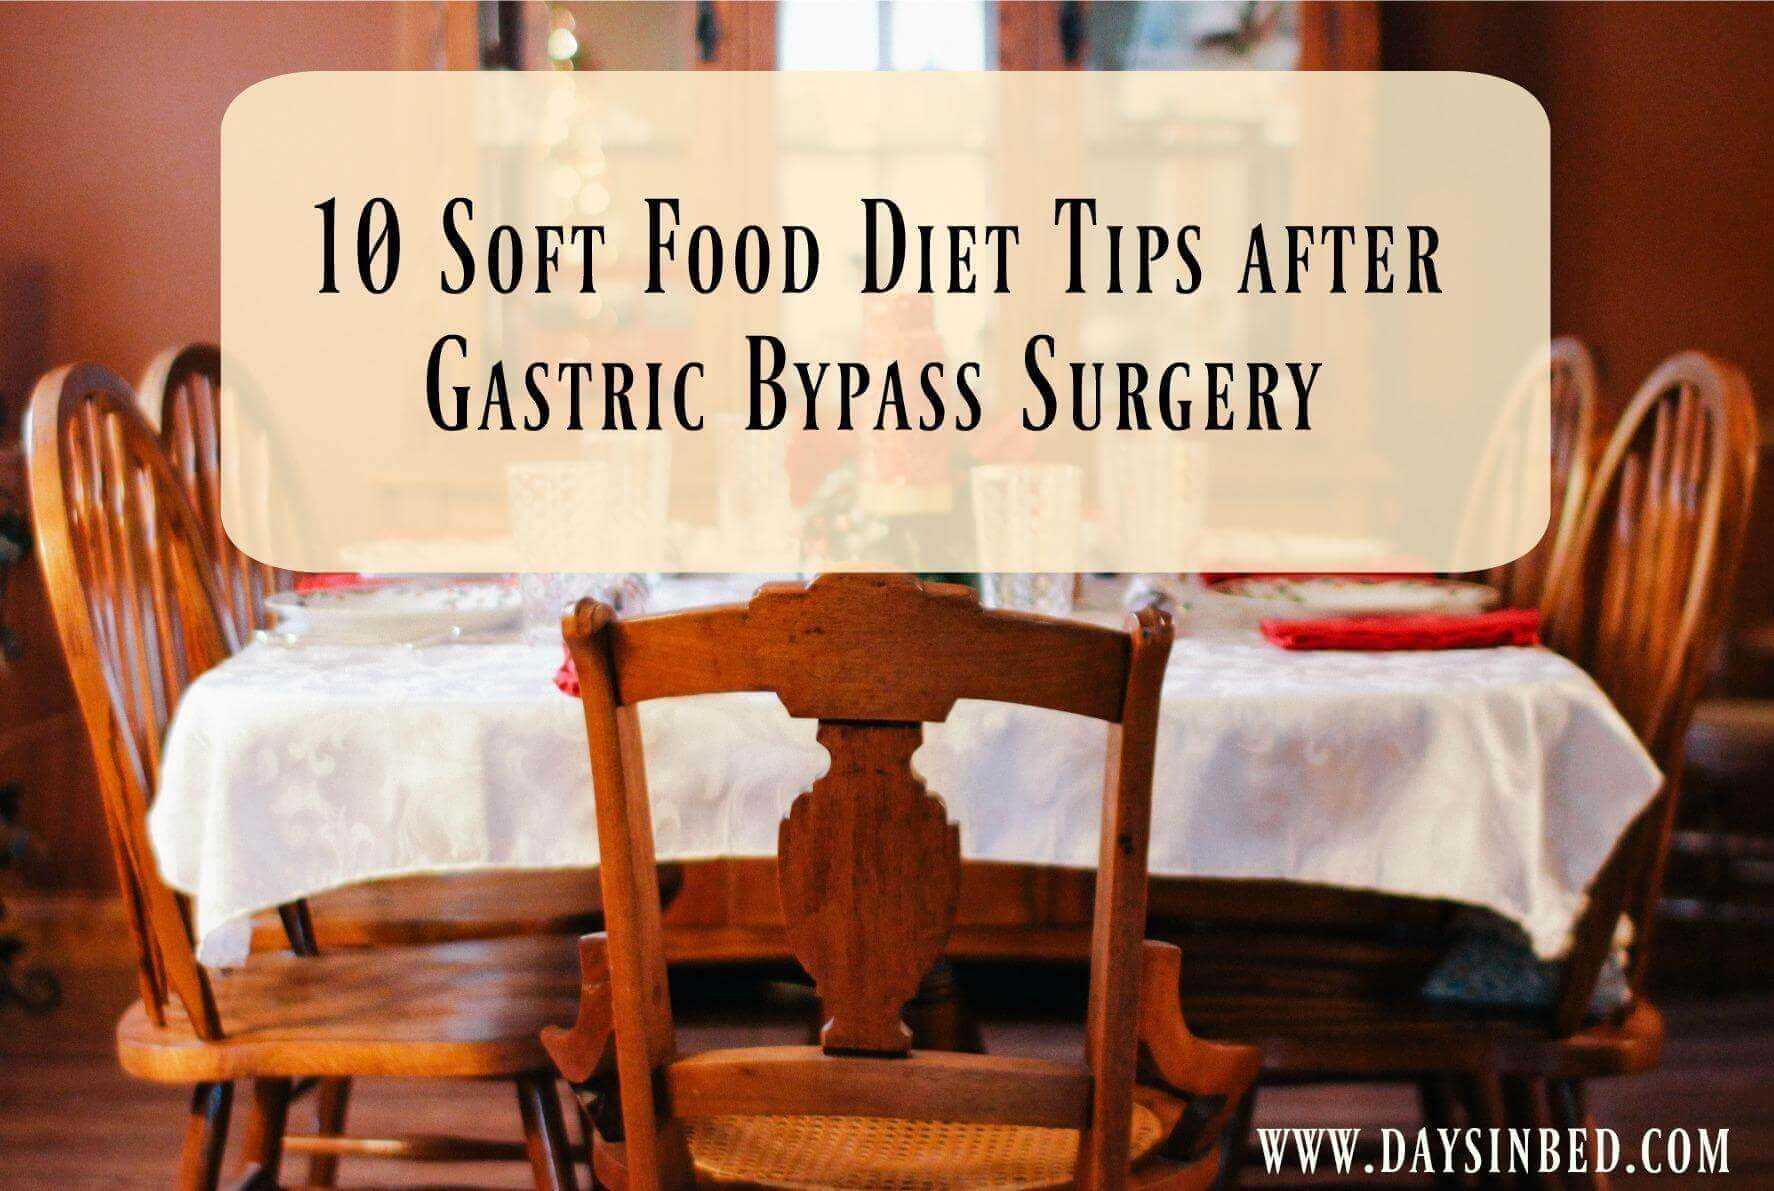 Soft Food Diet Tips Following Bariatric Surgery